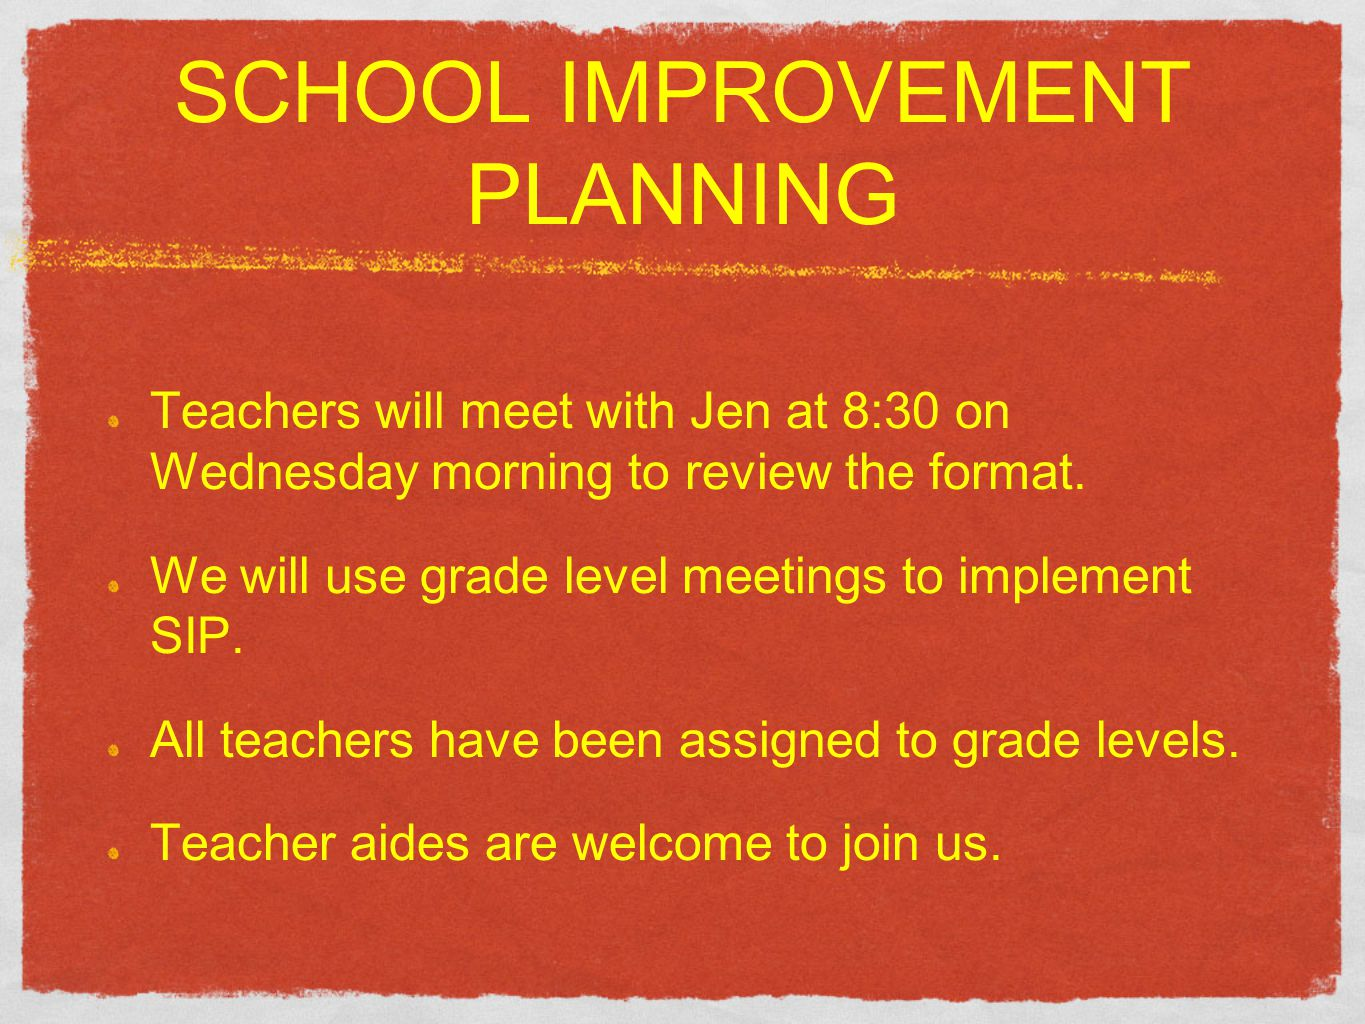 SCHOOL IMPROVEMENT PLANNING Teachers will meet with Jen at 8:30 on Wednesday morning to review the format. We will use grade level meetings to impleme